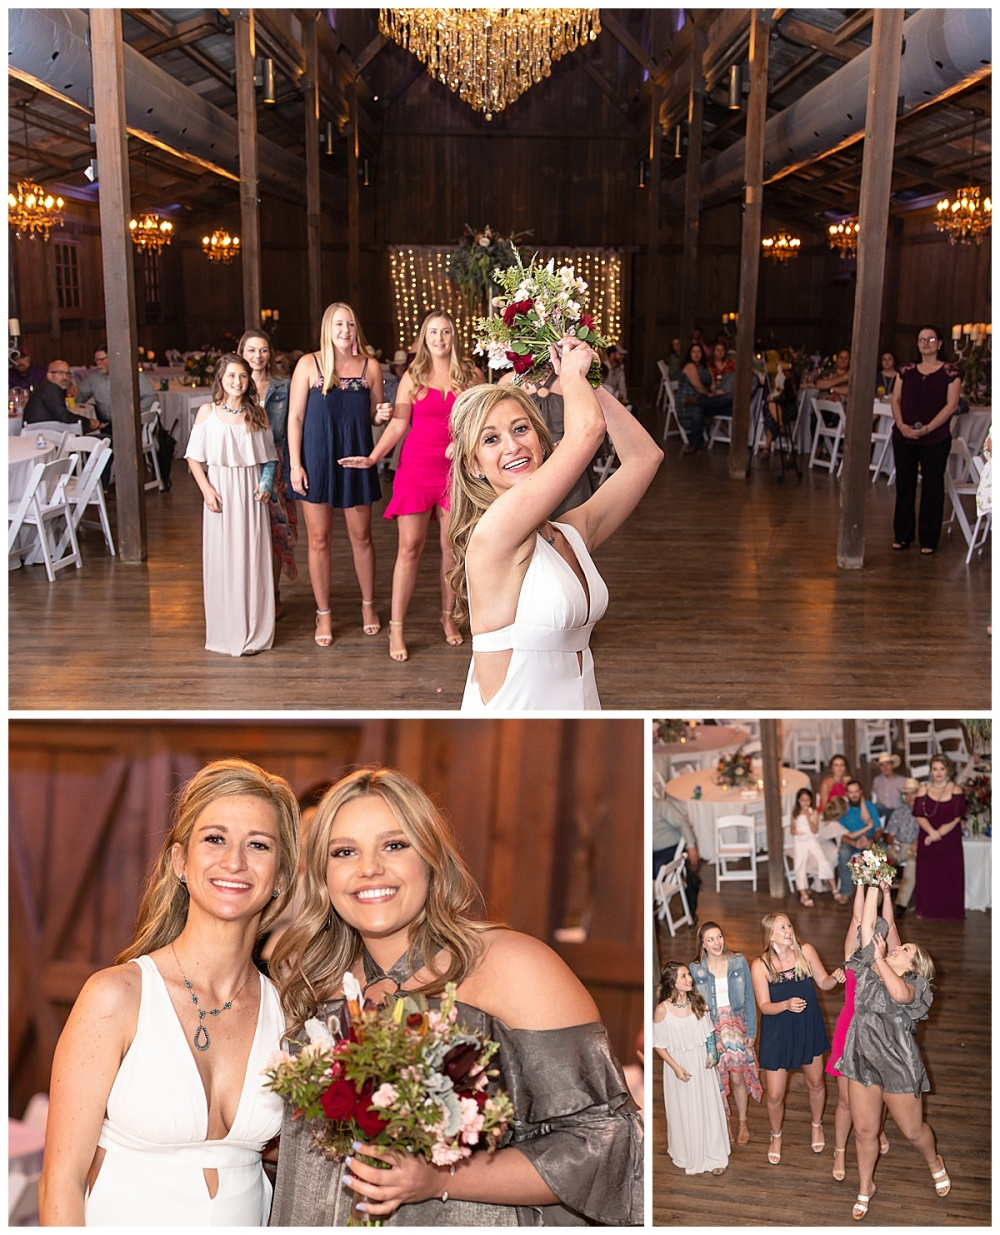 Eagle-Dancer-Ranch-Boerne-Texas-Wedding-Party-Barn-Carly-Barton-Photography_0064.jpg